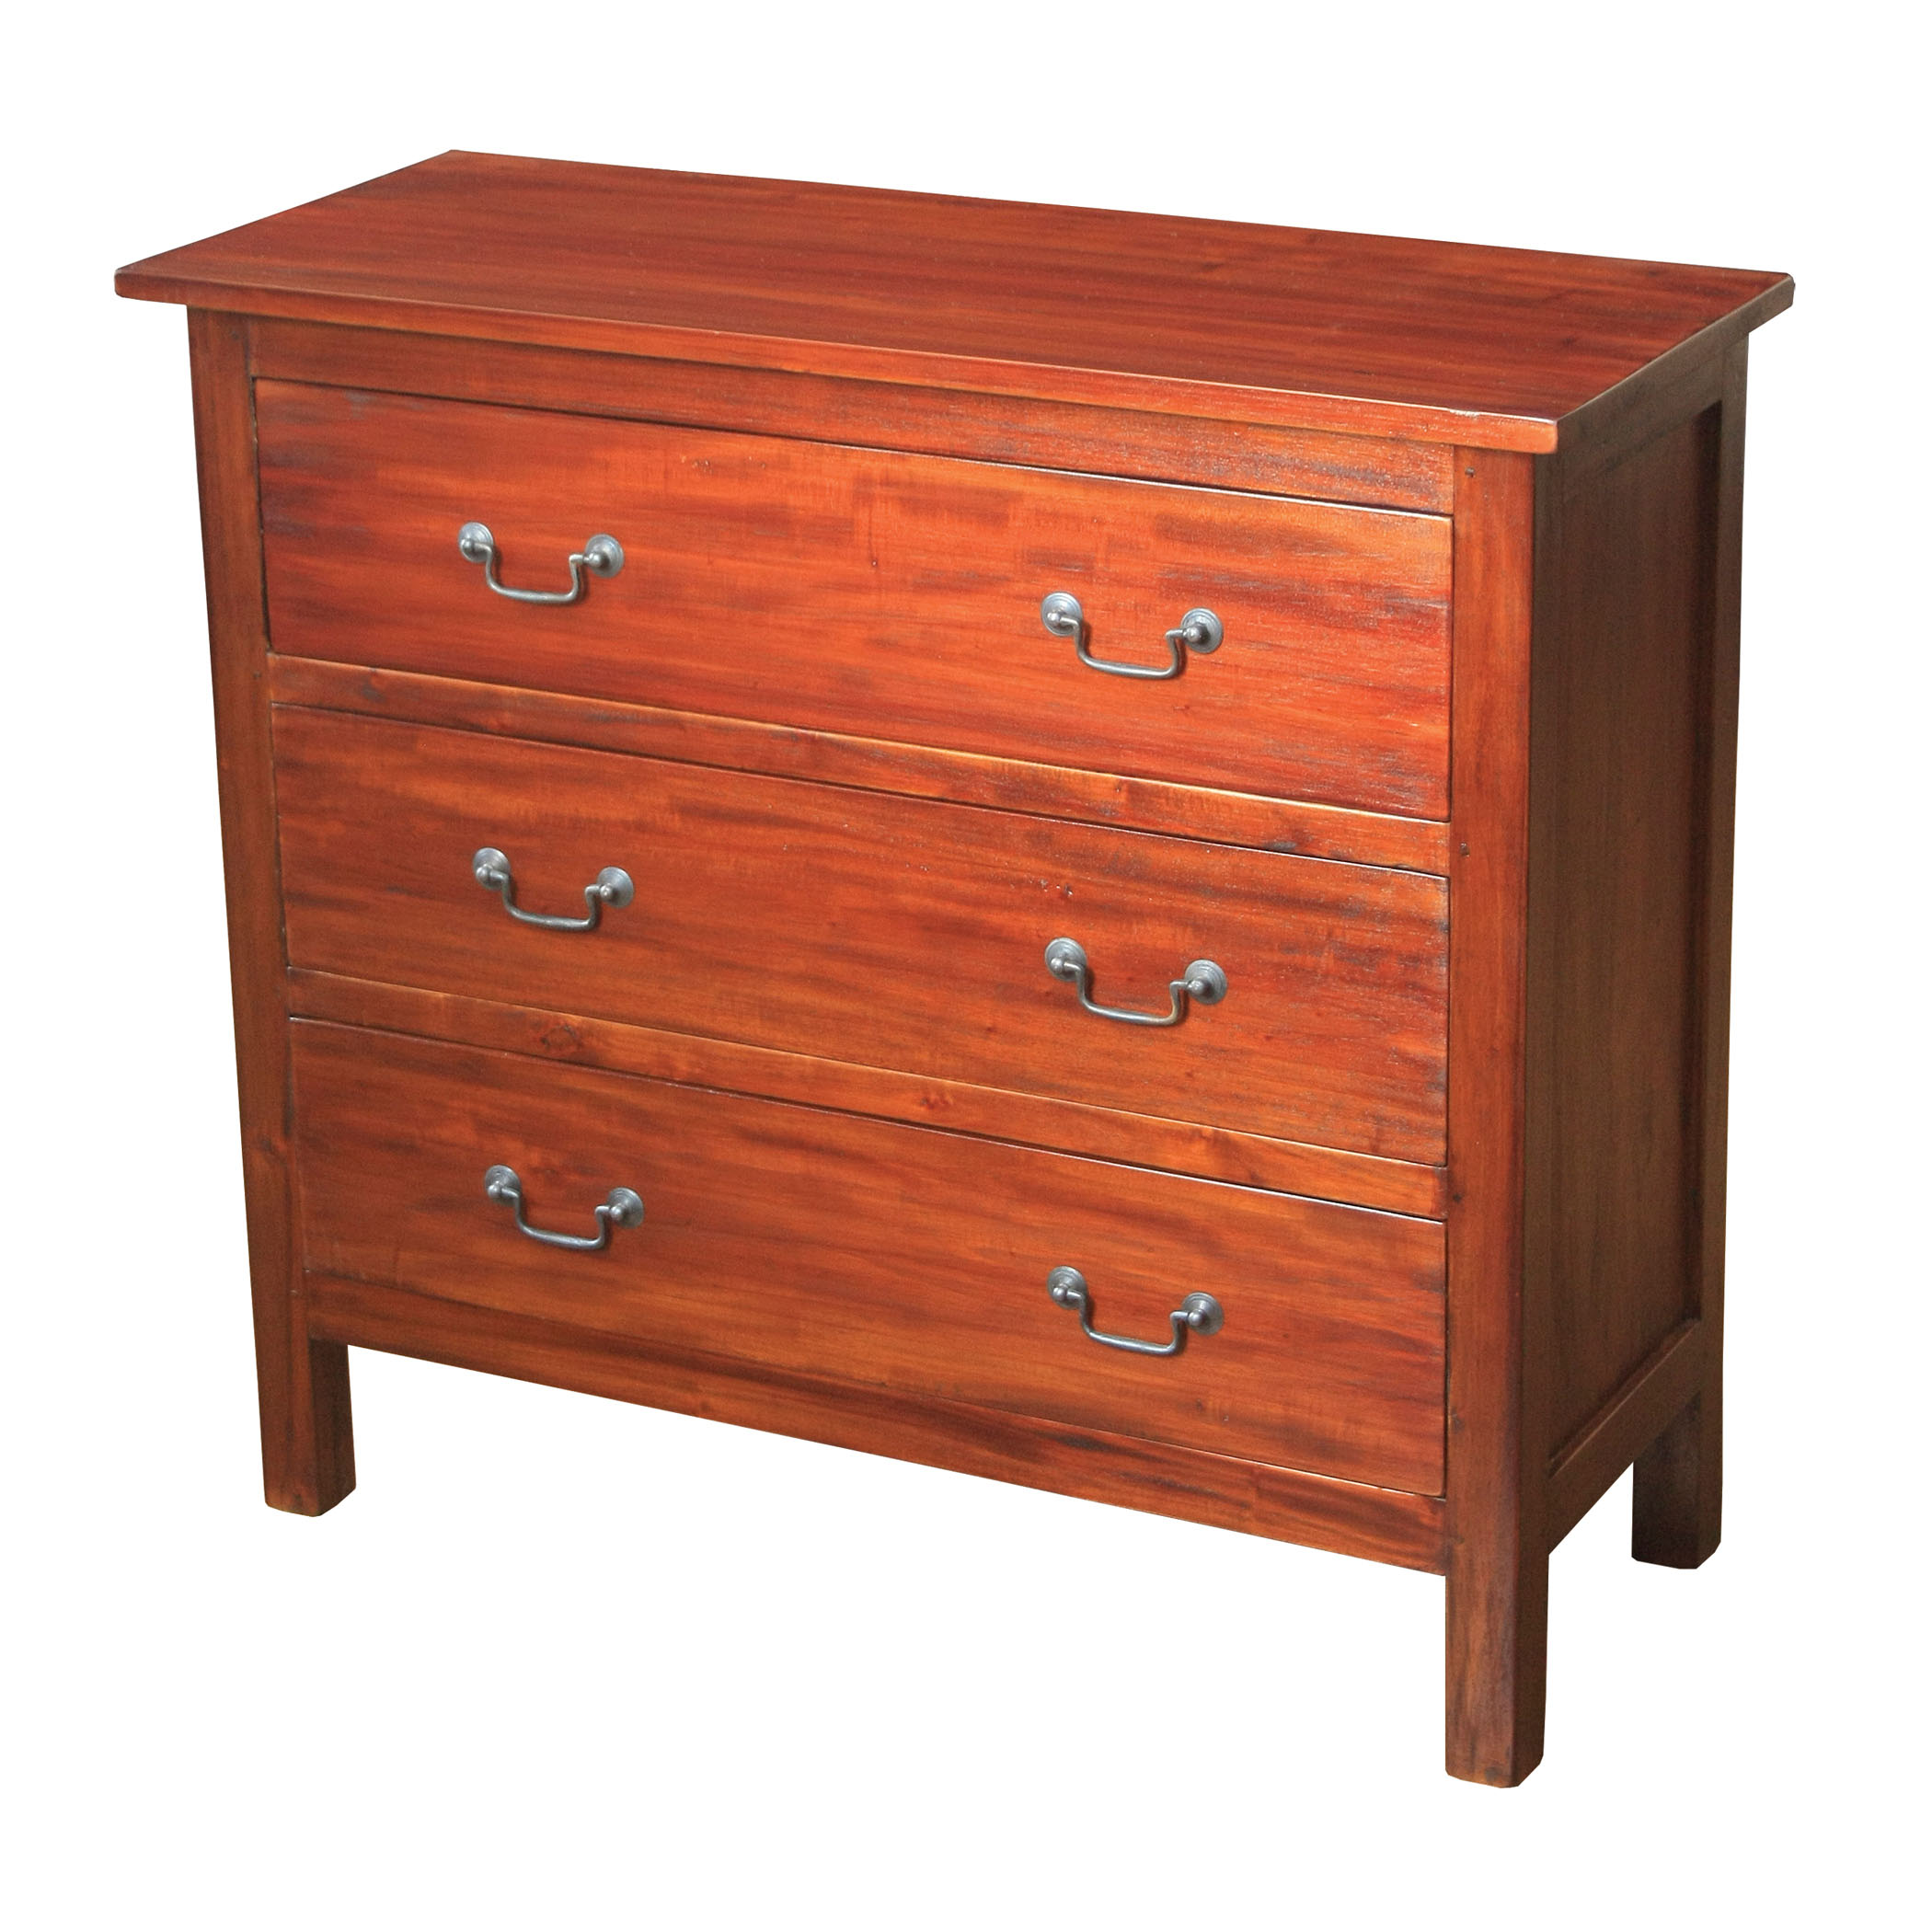 Sterling Industries 6500803 Chest